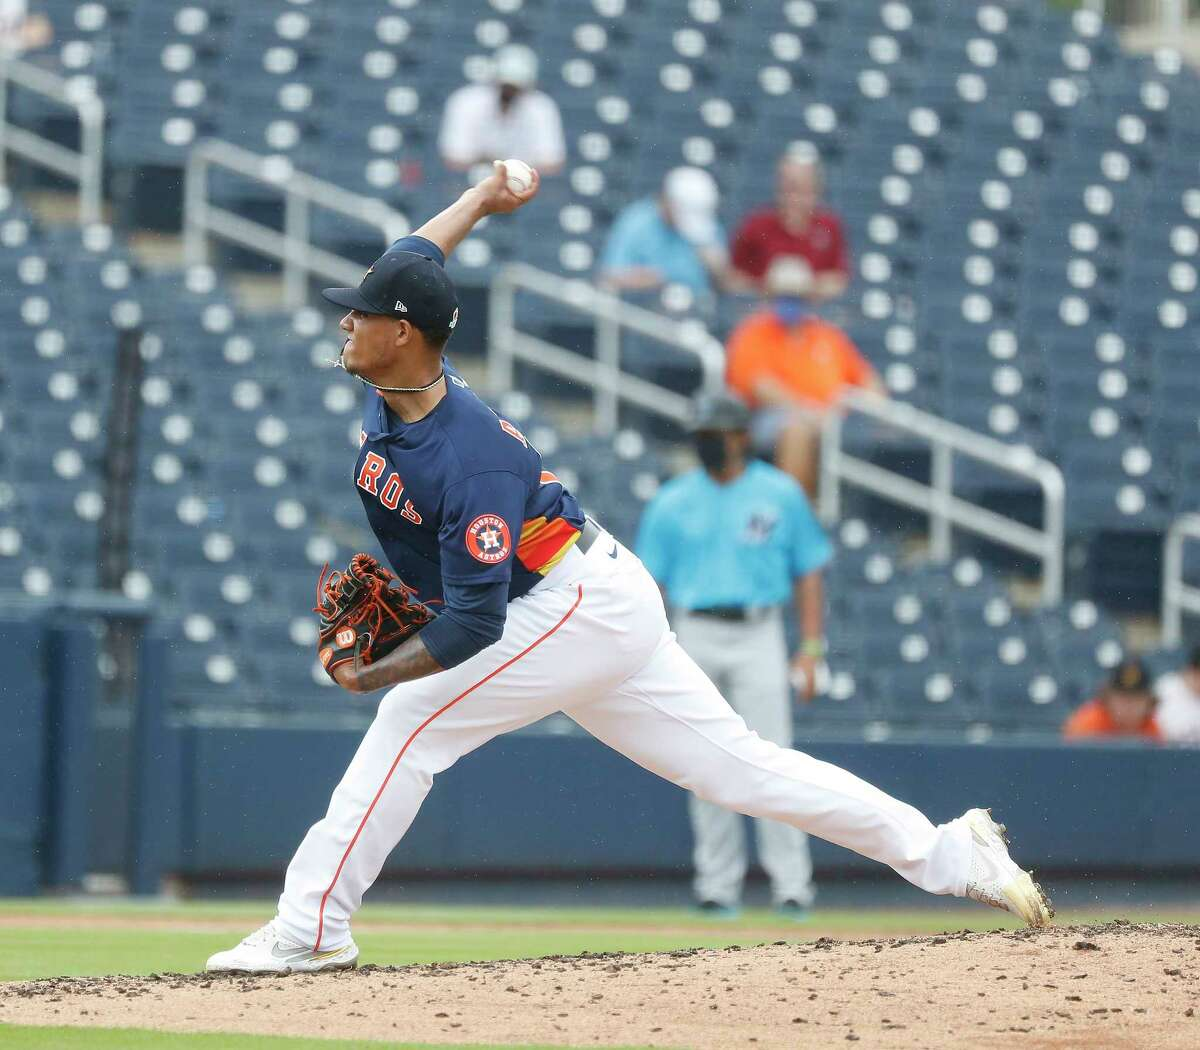 Houston Astros pitcher Bryan Abreu (66) pitches during the fourth inning of an MLB spring training game at Ballpark of the Palm Beaches in West Palm Beach, Florida, Sunday, February 28, 2021.